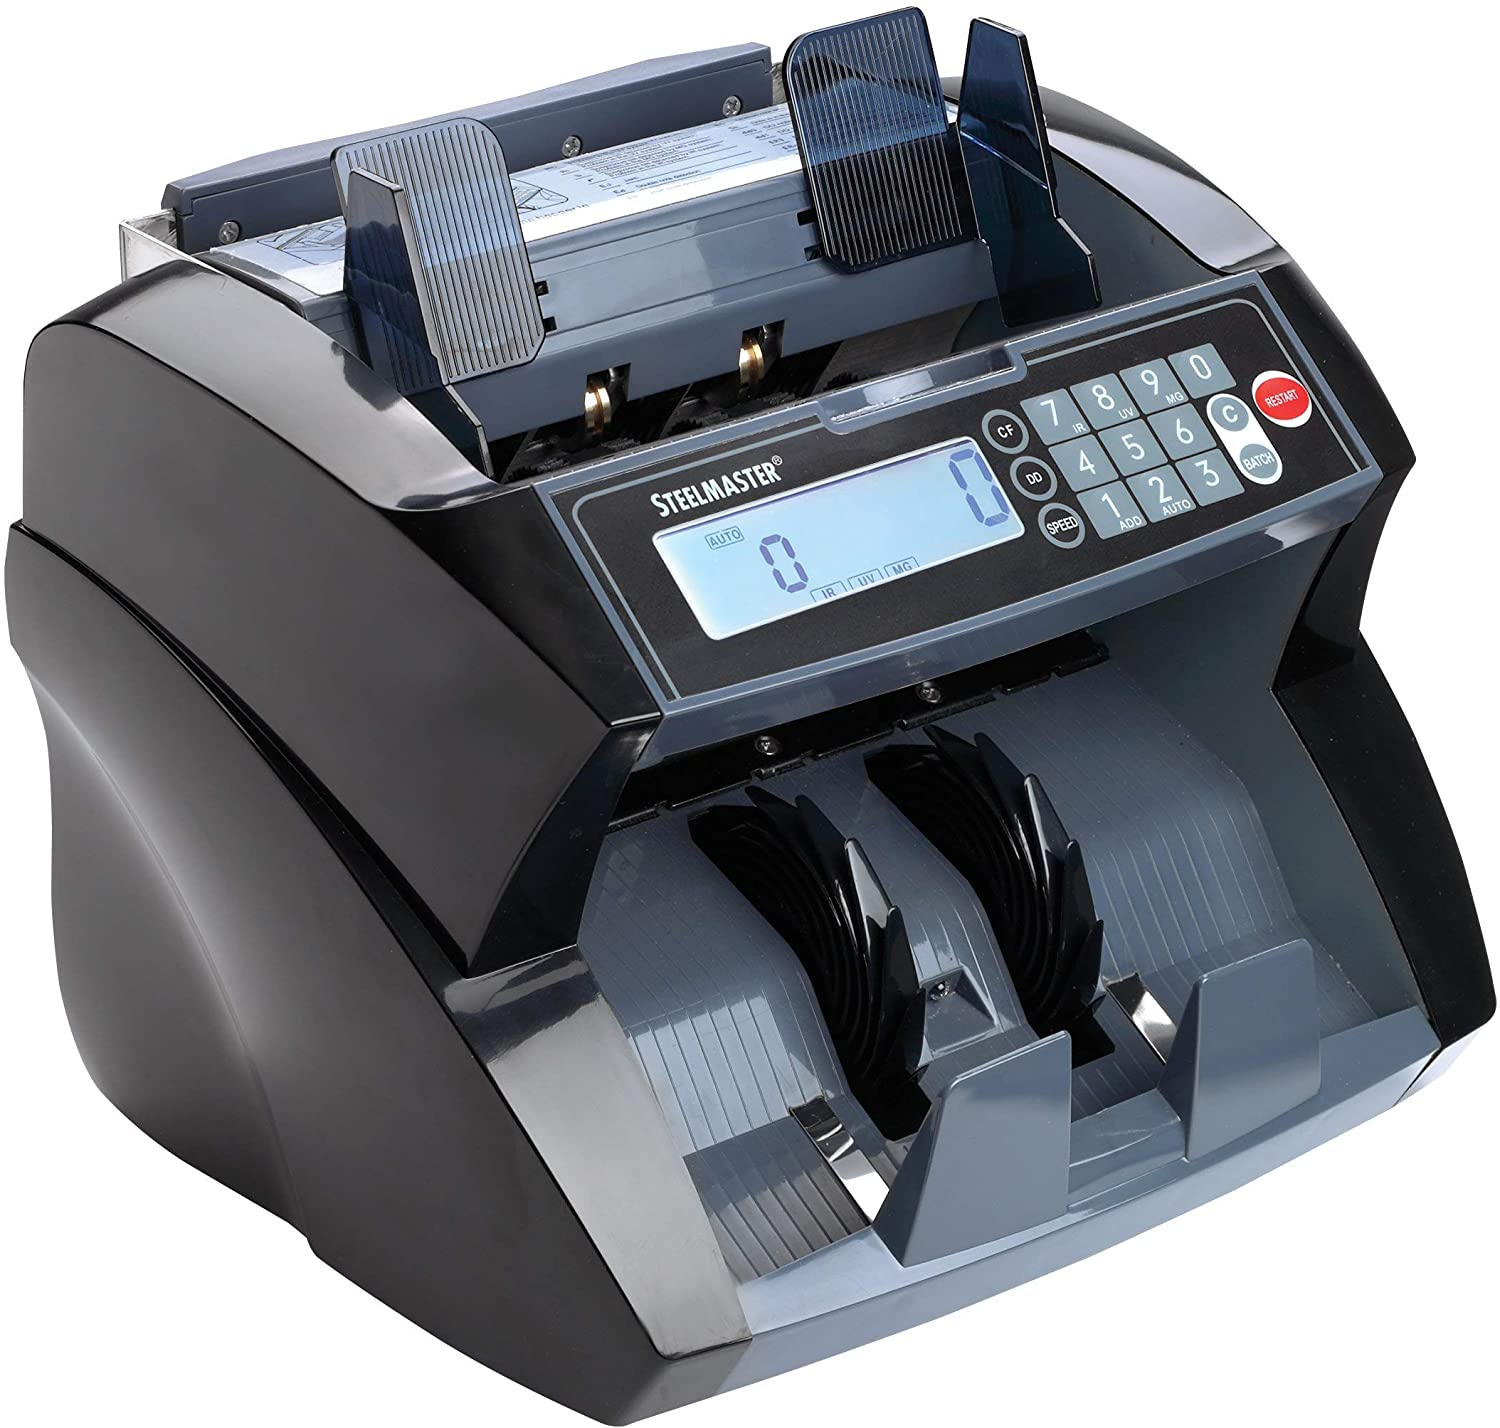 2004850C8 MG Black STEELMASTER Premium Front-Loading Bill Counter with UV IR Counterfeit Detection